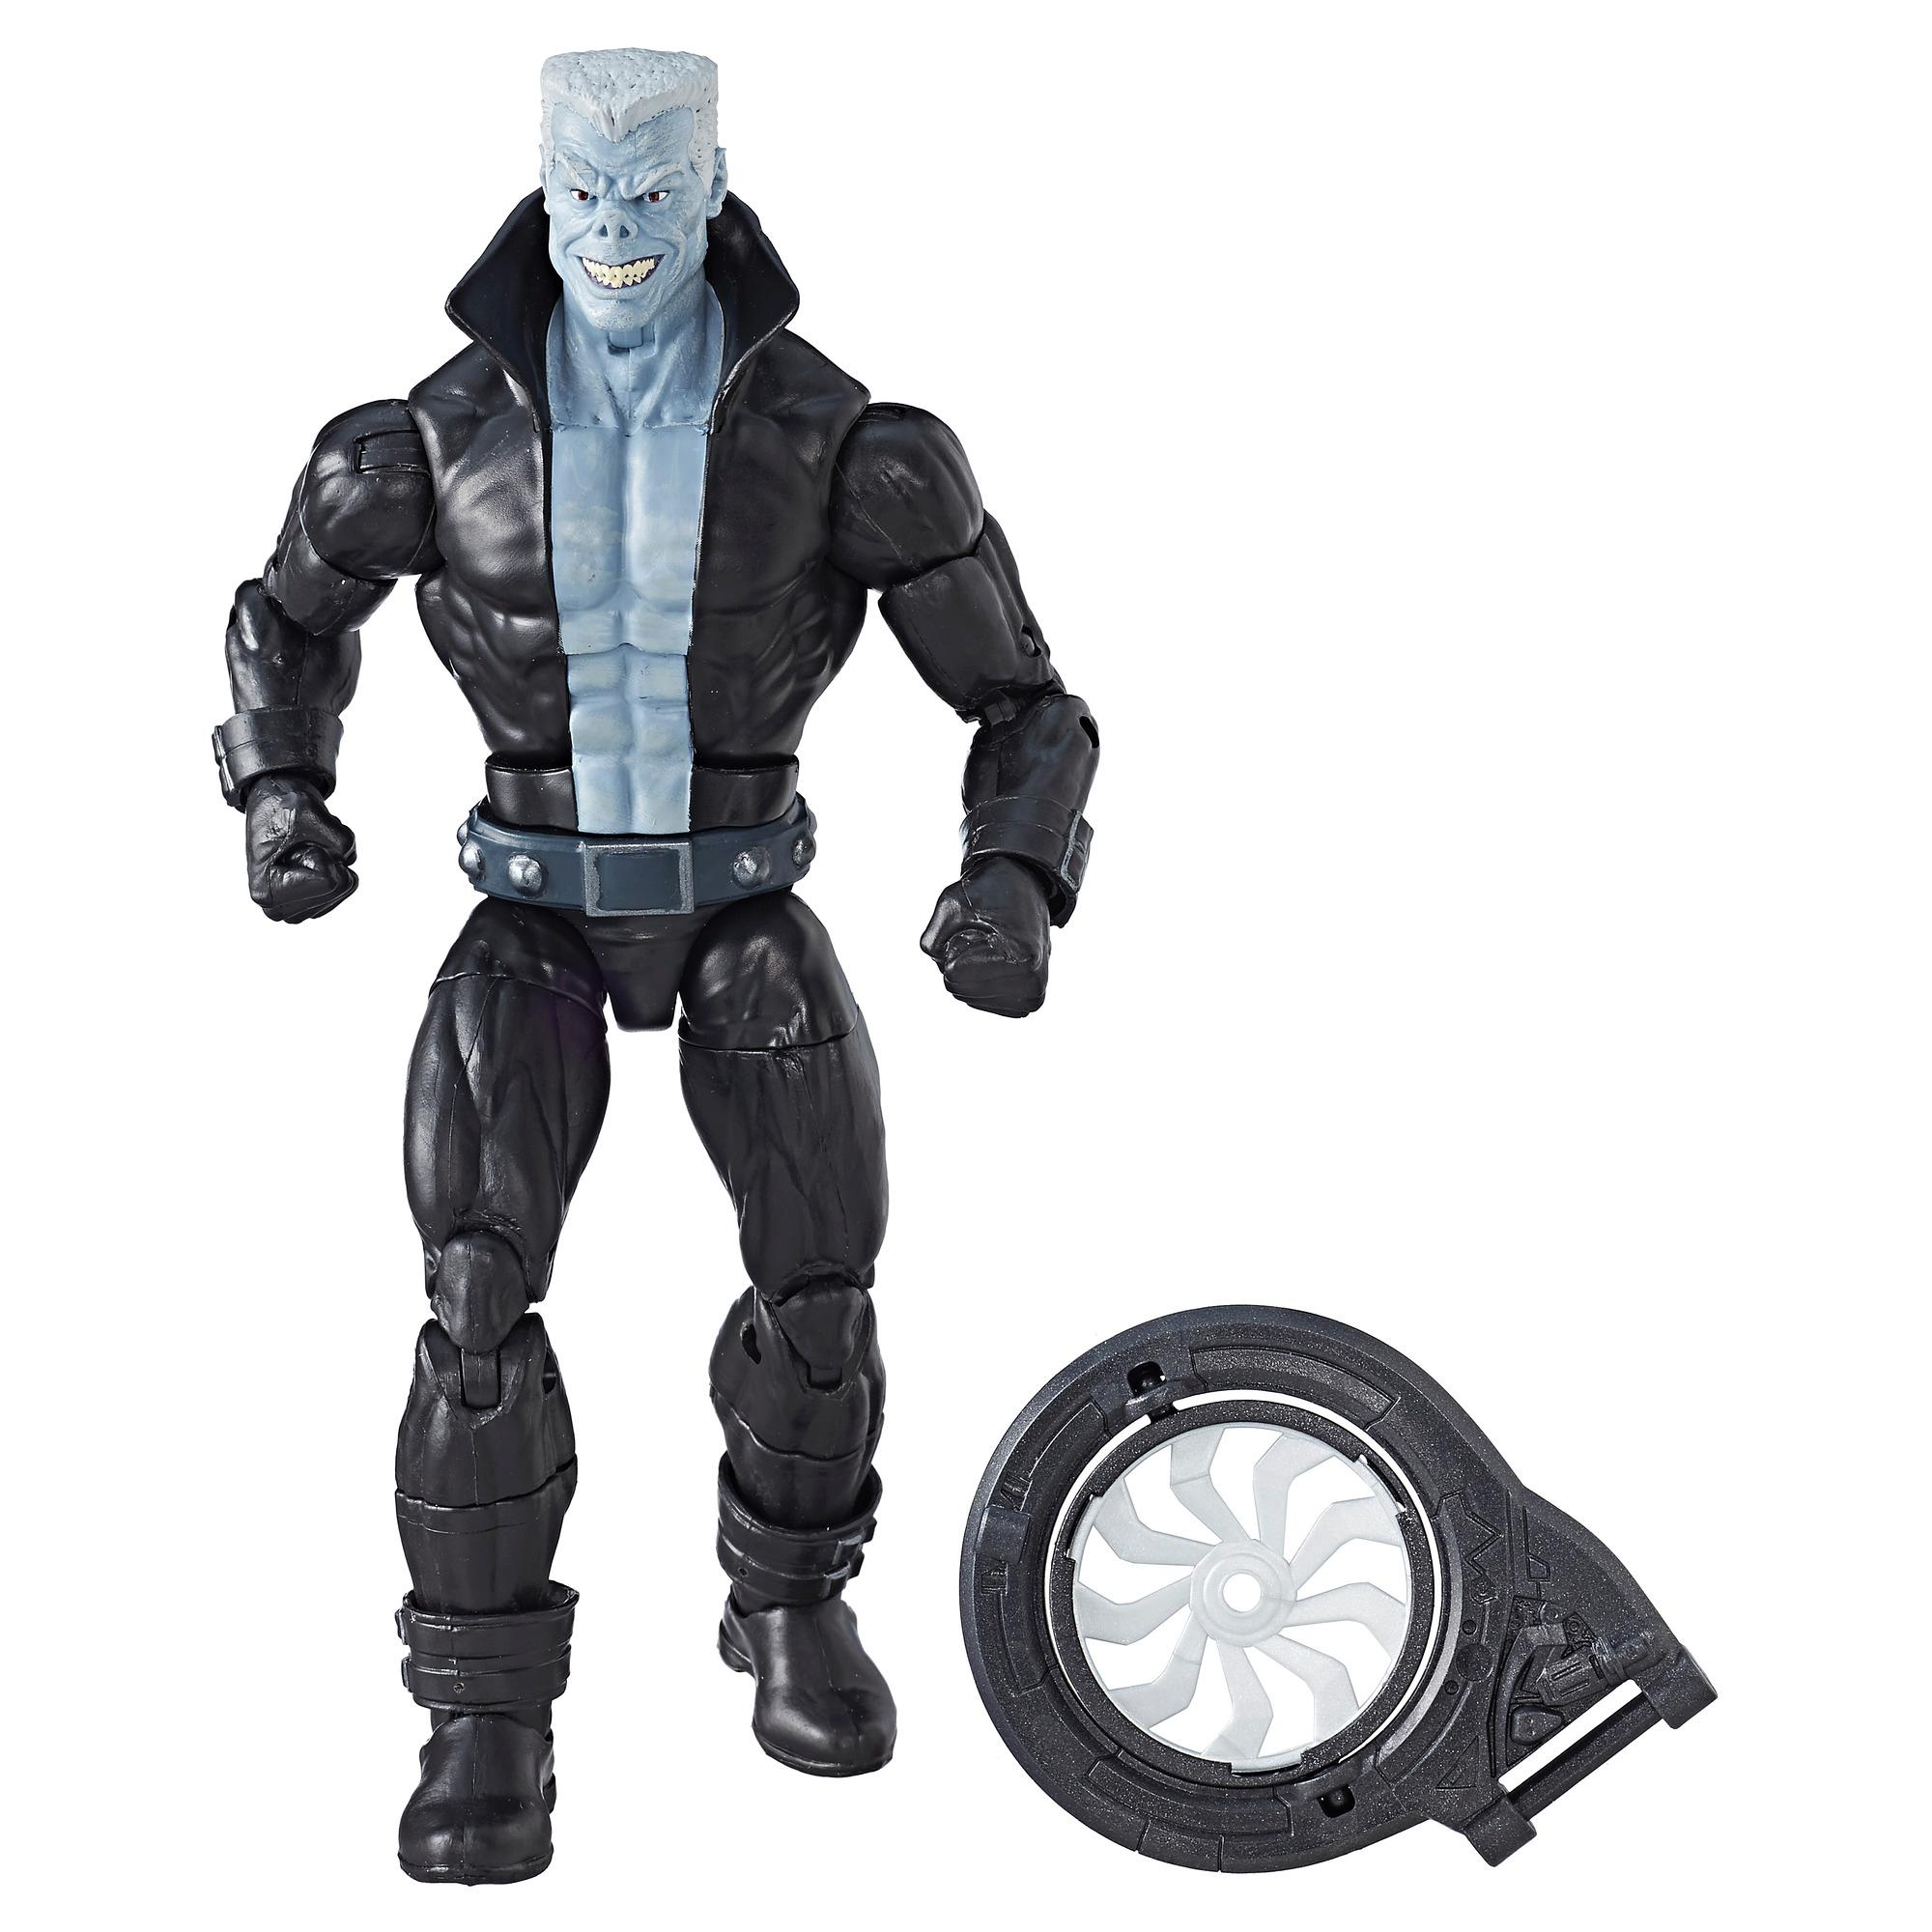 Marvel Legends Series - Villanos siniestros: Marvel's Tombstone de 15 cm